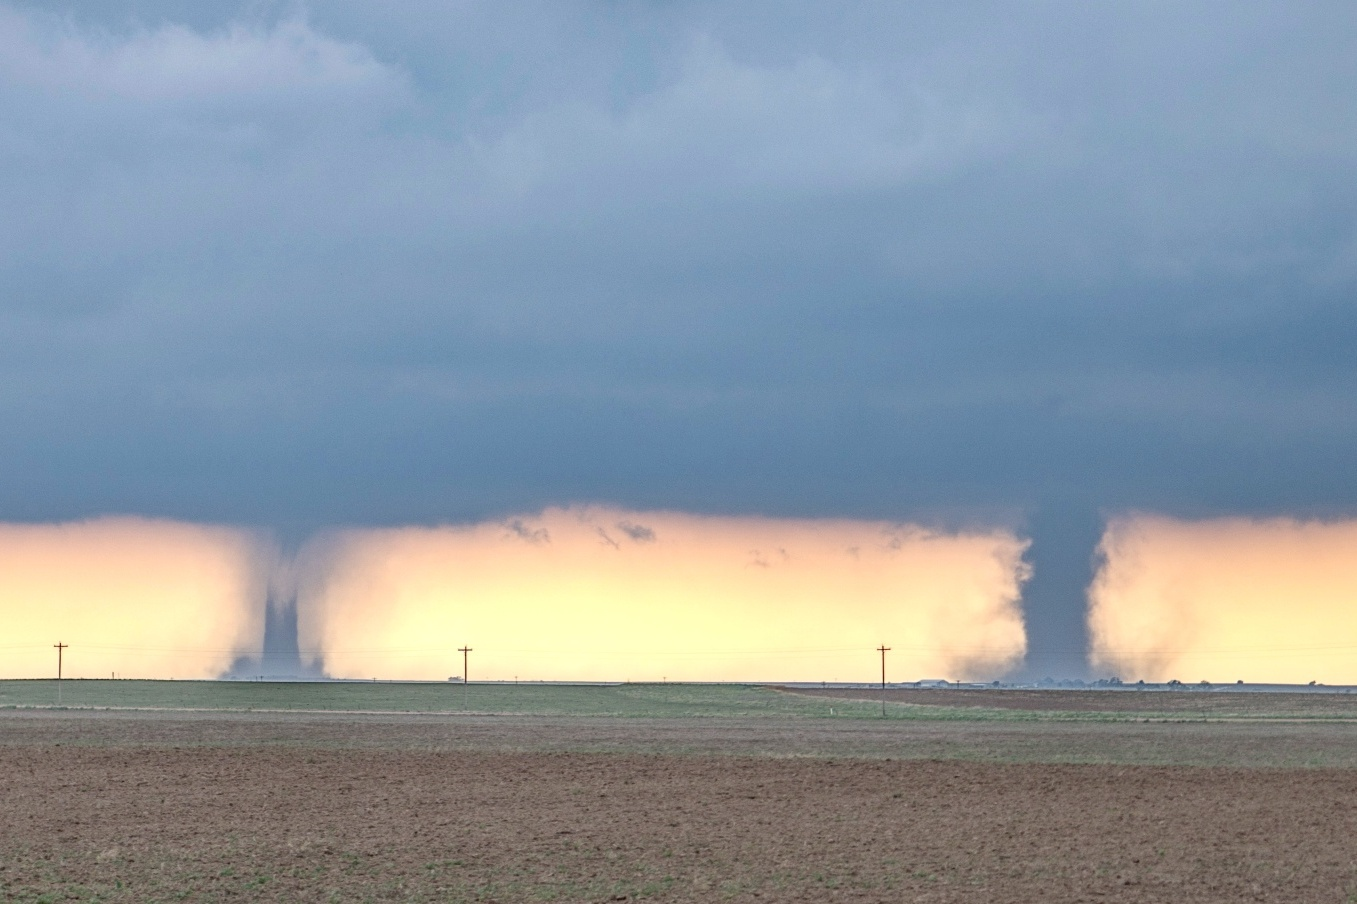 Two tornadoes at the same time - Is it possible? Yes, it is. On 29 May 2018 we intercepted these two in eastern Colorado. The right one is the main supercell tornado. The left one is located on the RFD and could be either cyclonic or anti-cyclonic. In all our years of chasing, we have seen this several times.